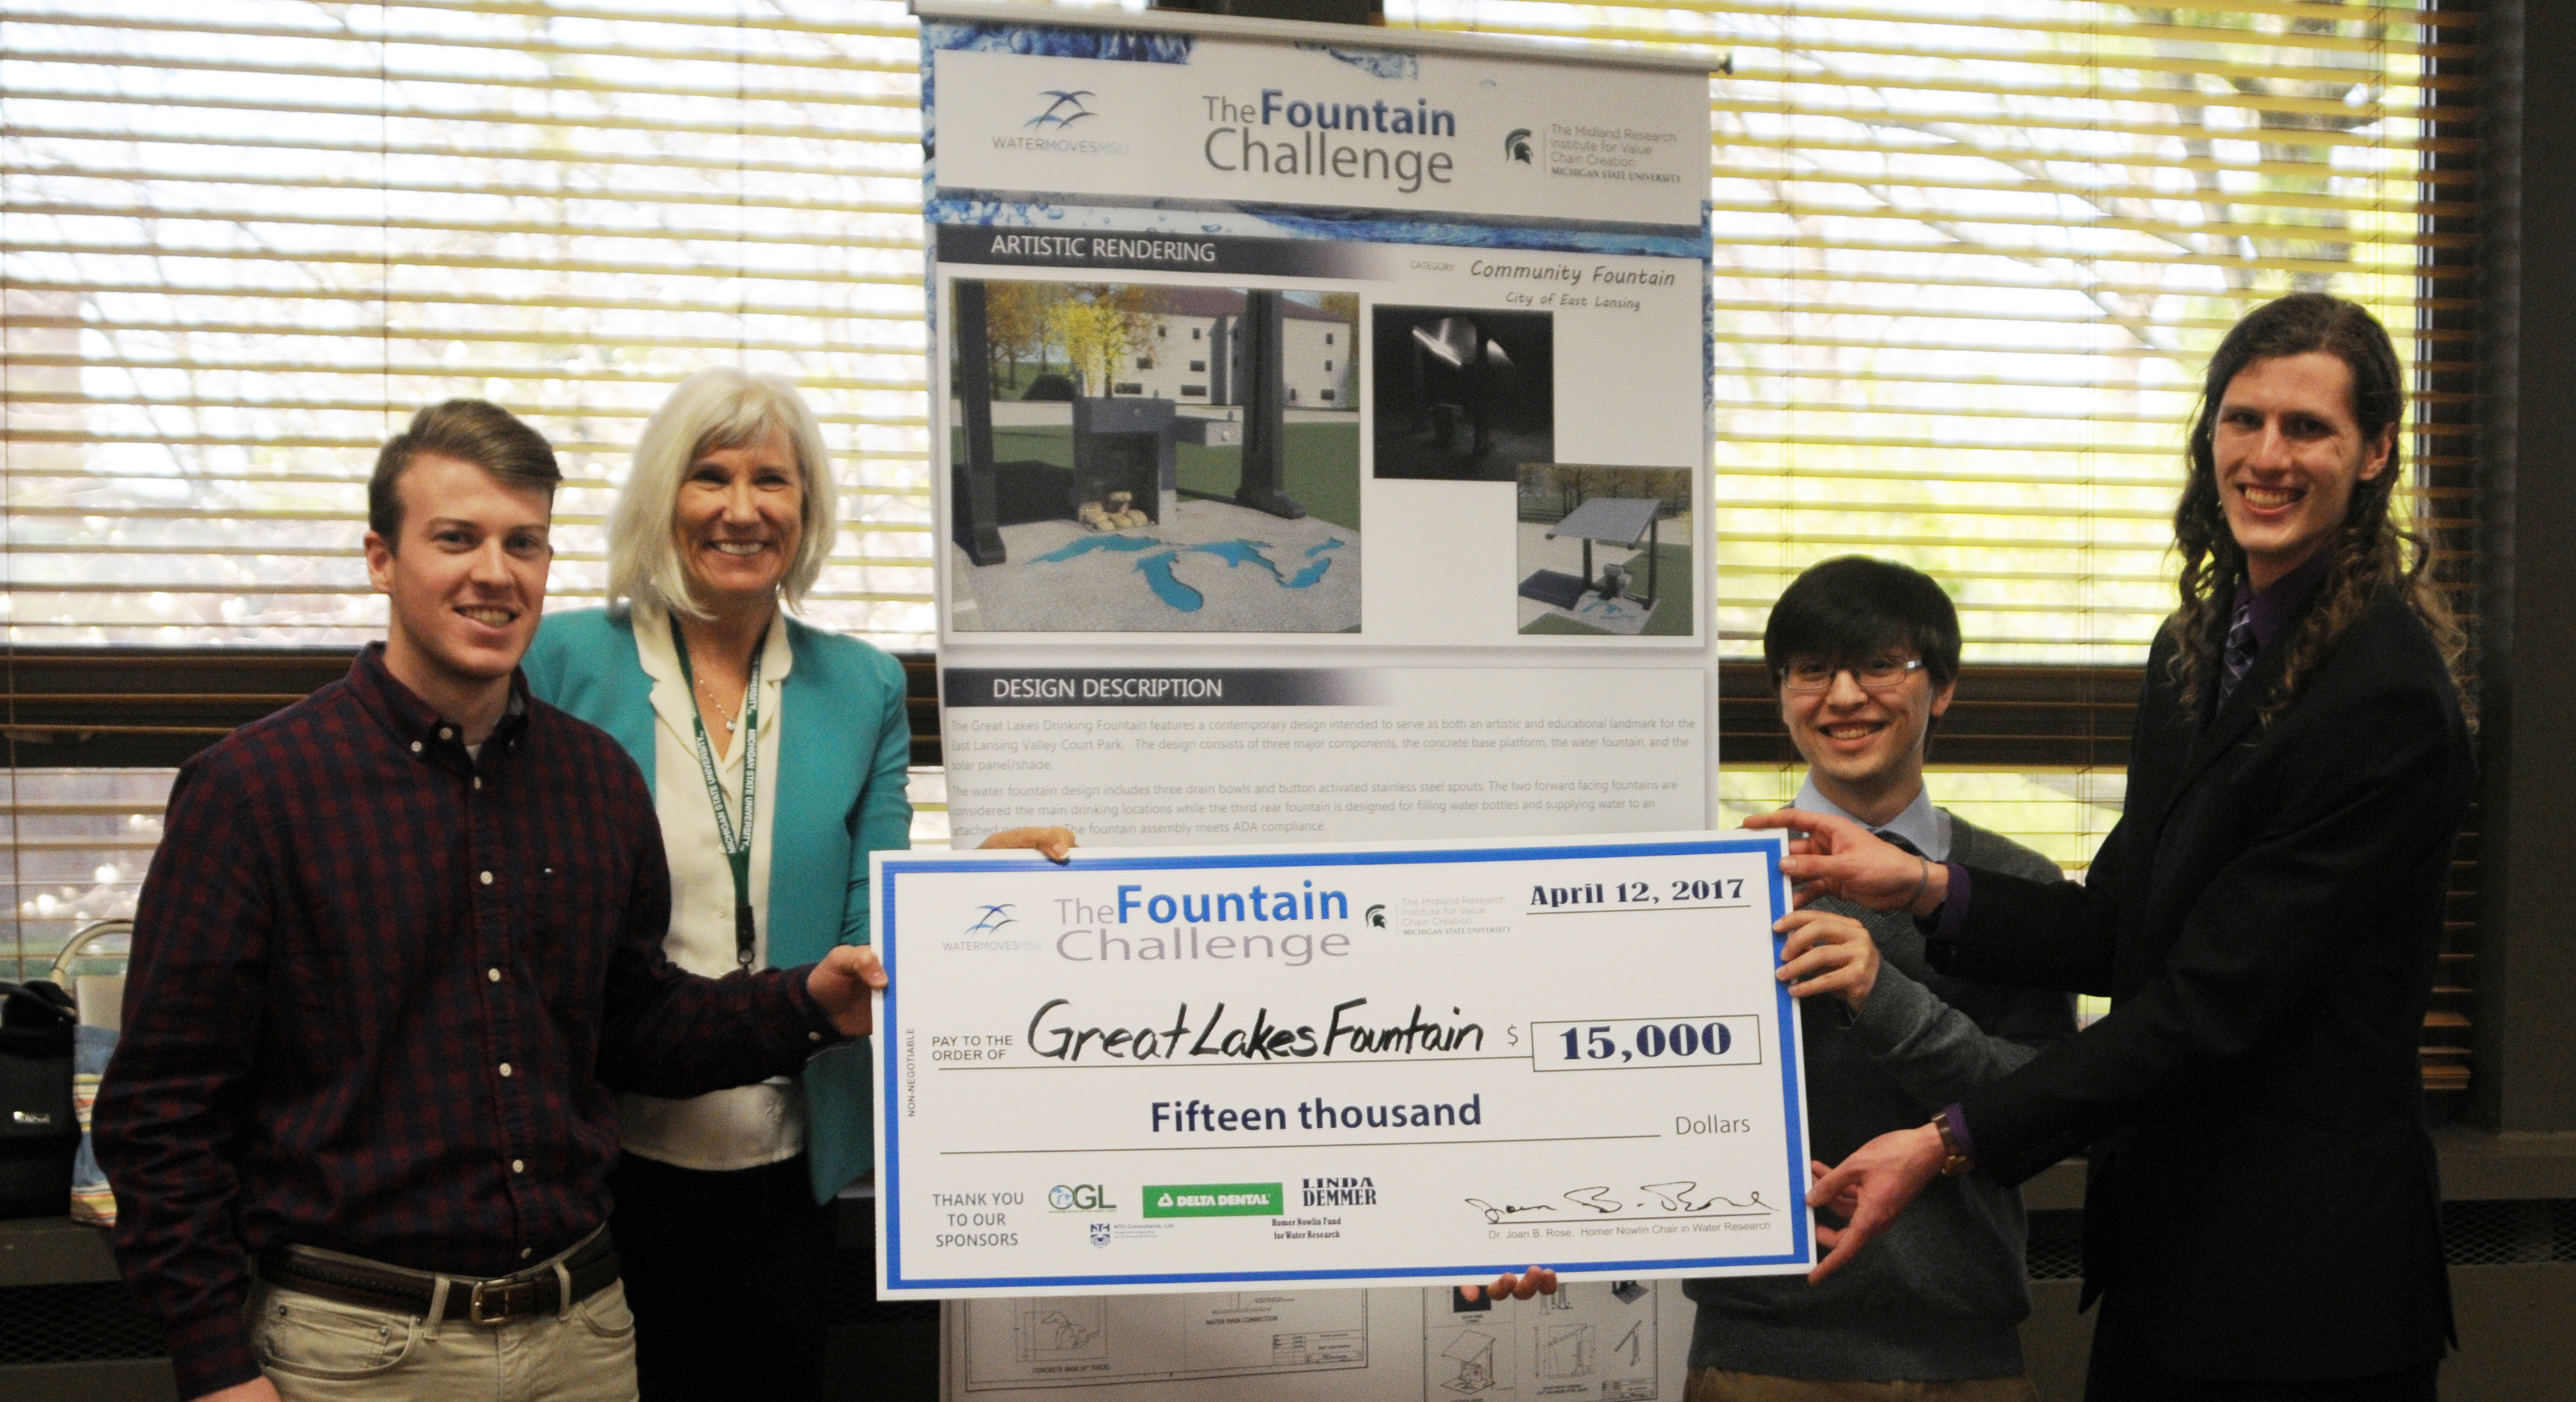 A photo of the winners of the Fountain Challenging holding their prize check for $15,000.